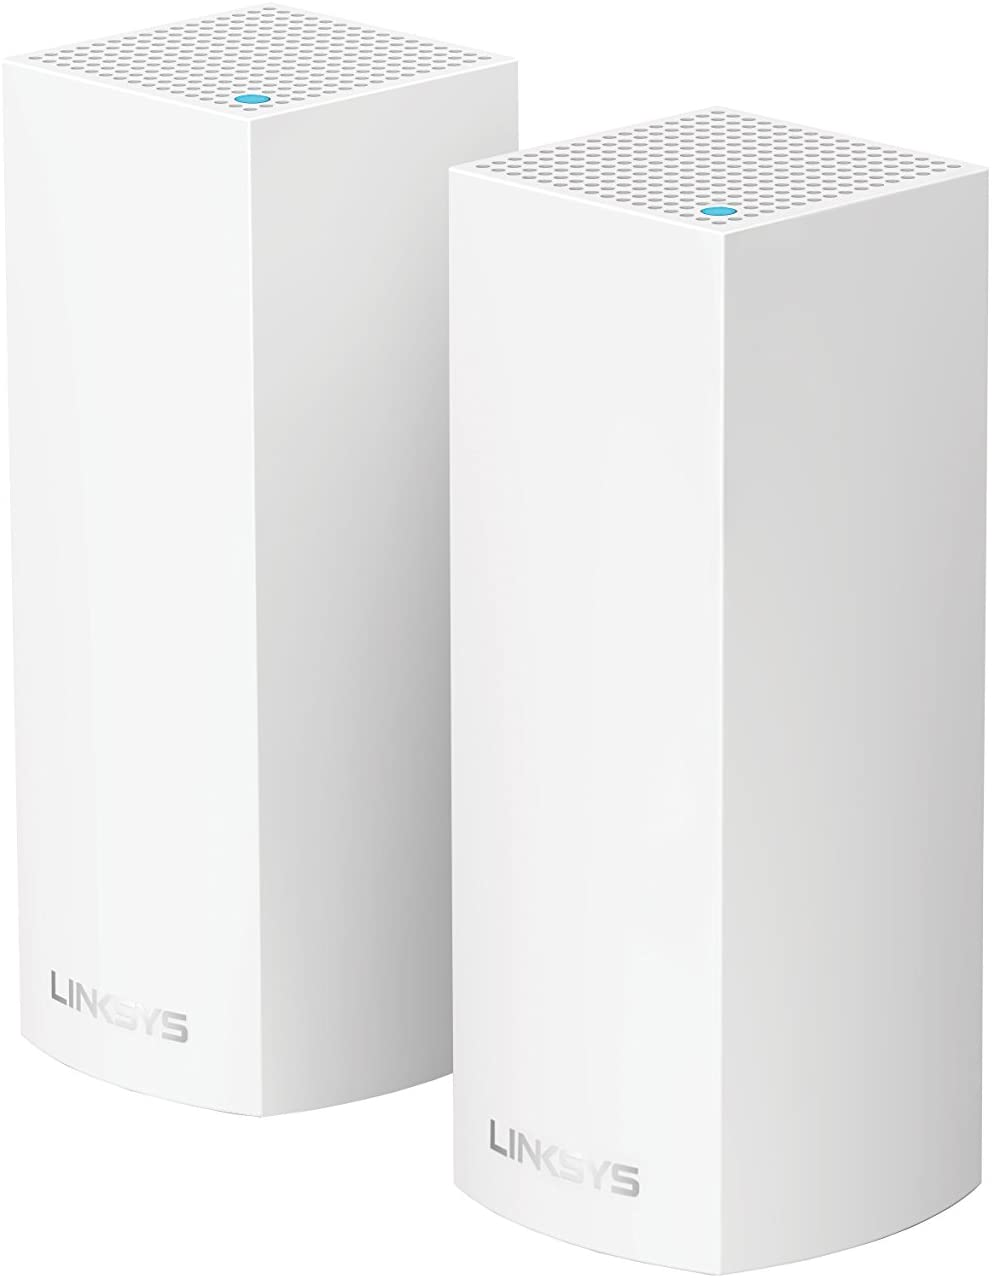 Linksys Velop Tri-Band AC4400 Whole Home WiFi Mesh System- 2-Pack (Coverage up to 4000 sq. ft)